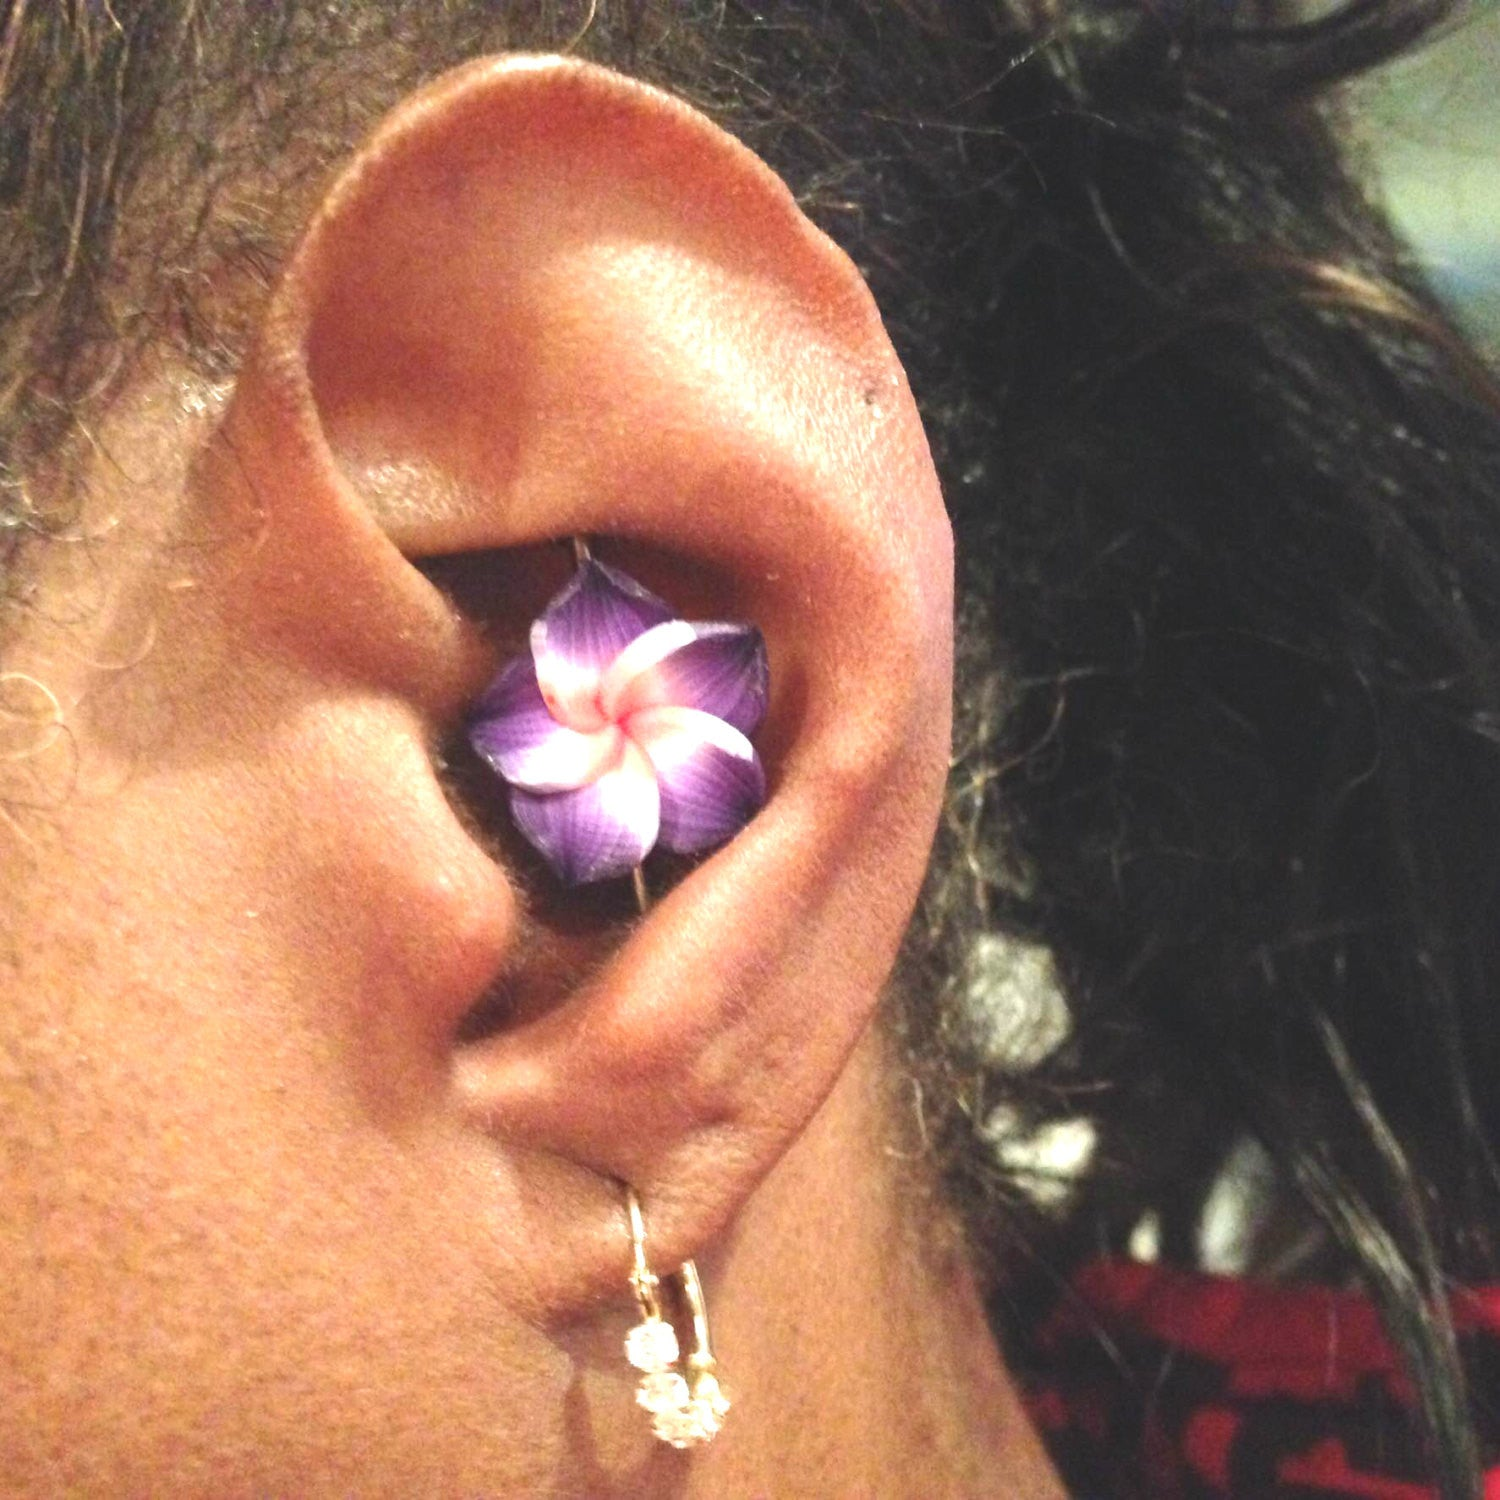 Purple Kawaii Flower Industrial Bar Barbell Piercing Upper Ear